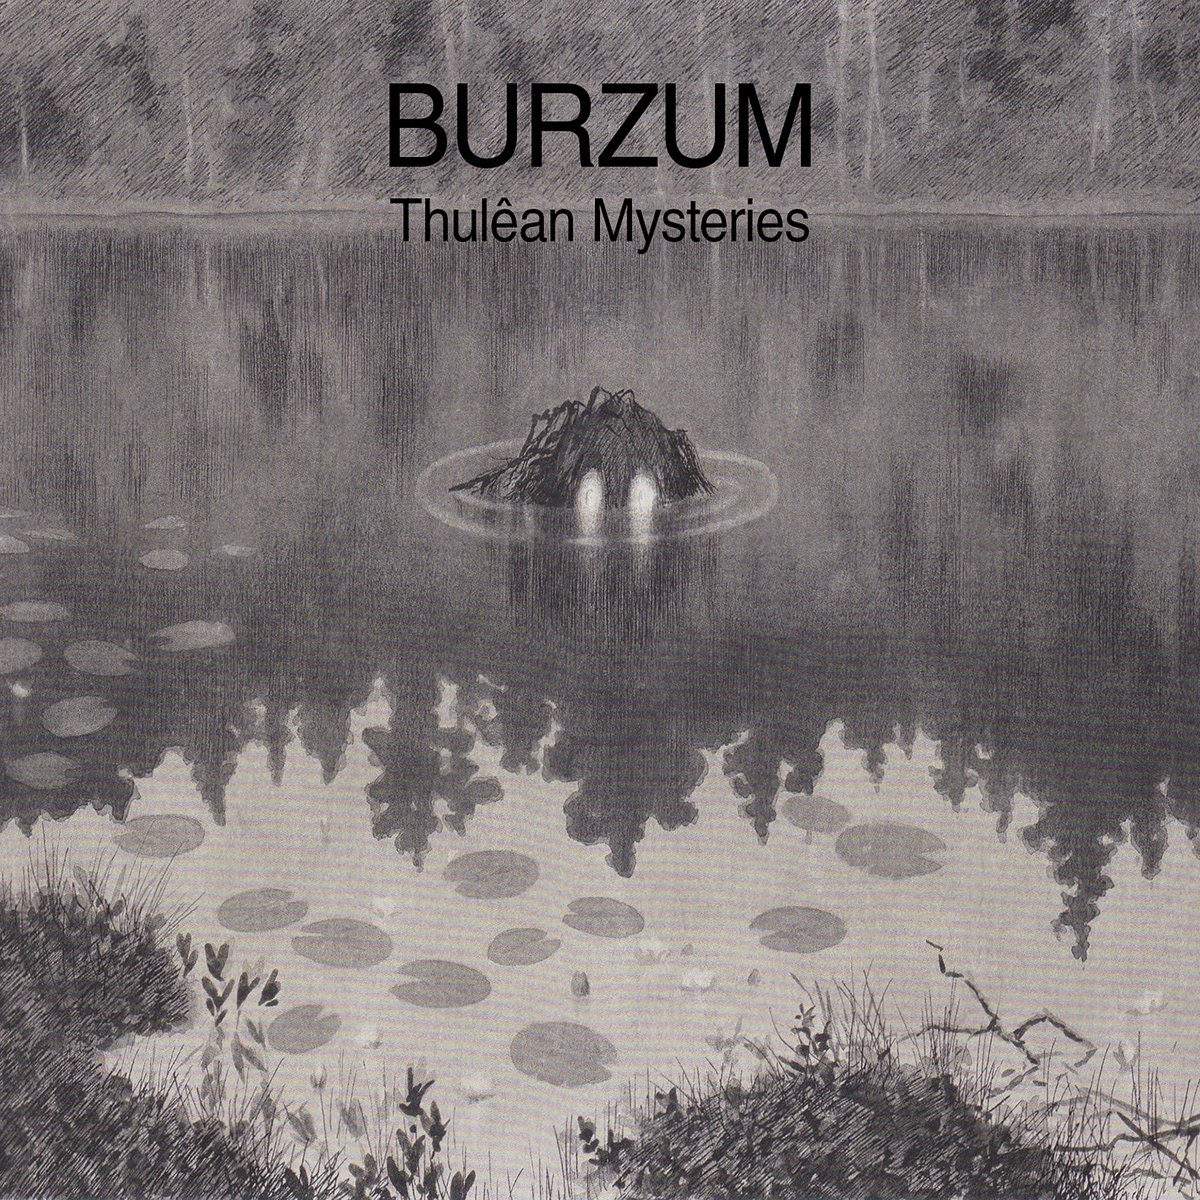 BURZUM Returns With New Album